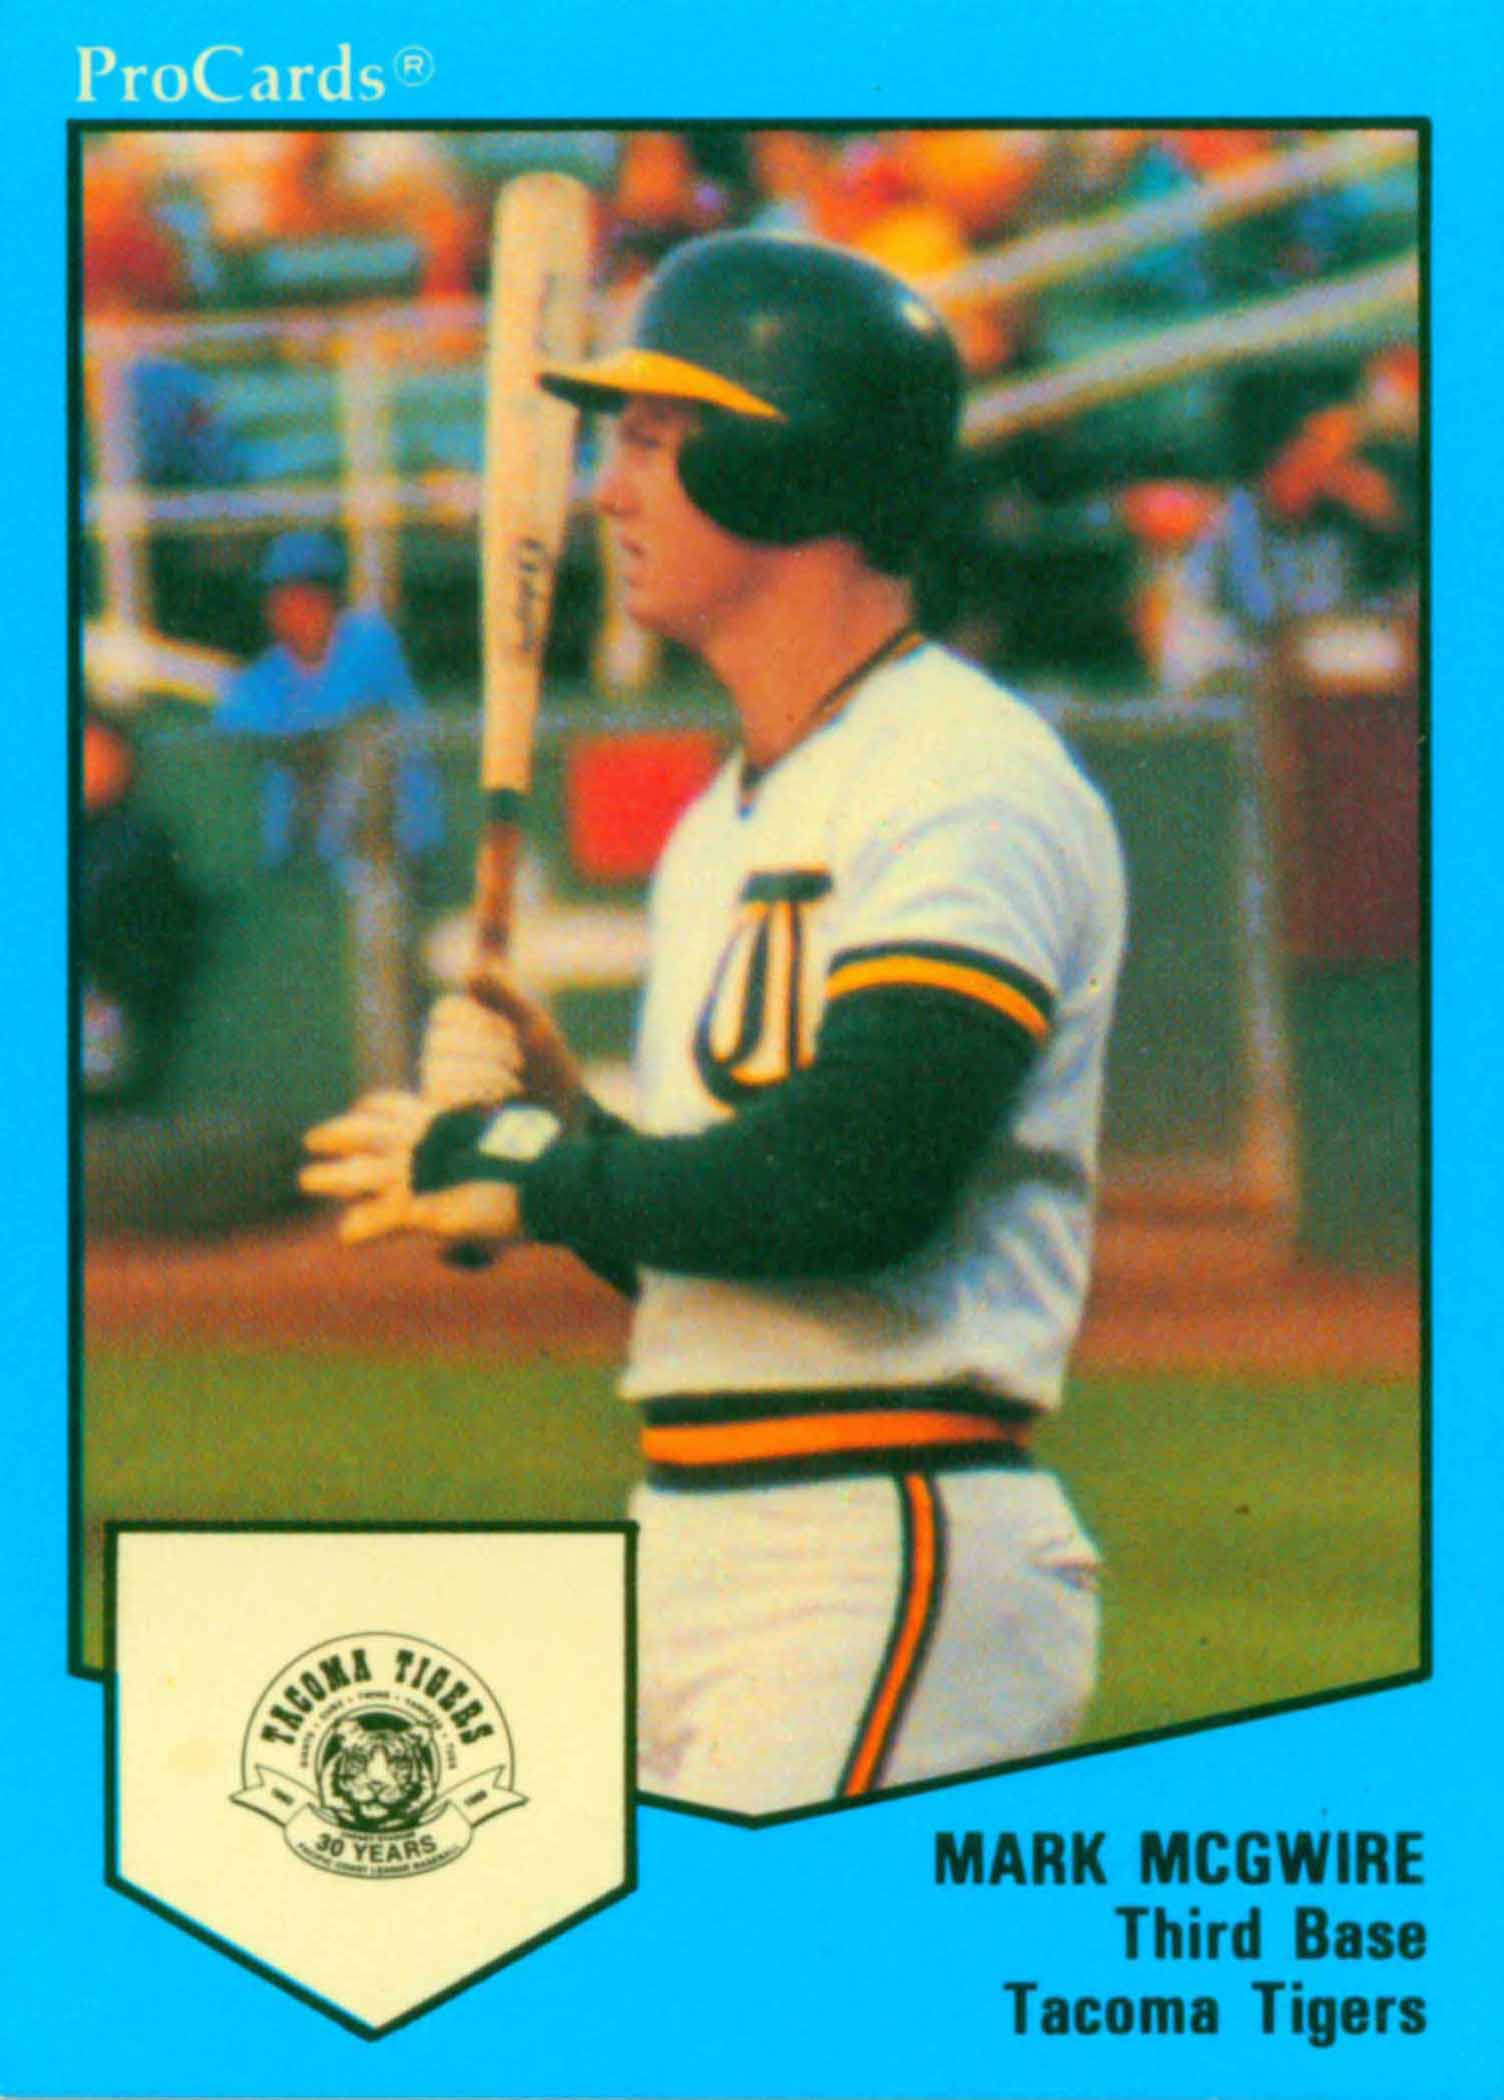 1989 Tacoma Tigers ProCards